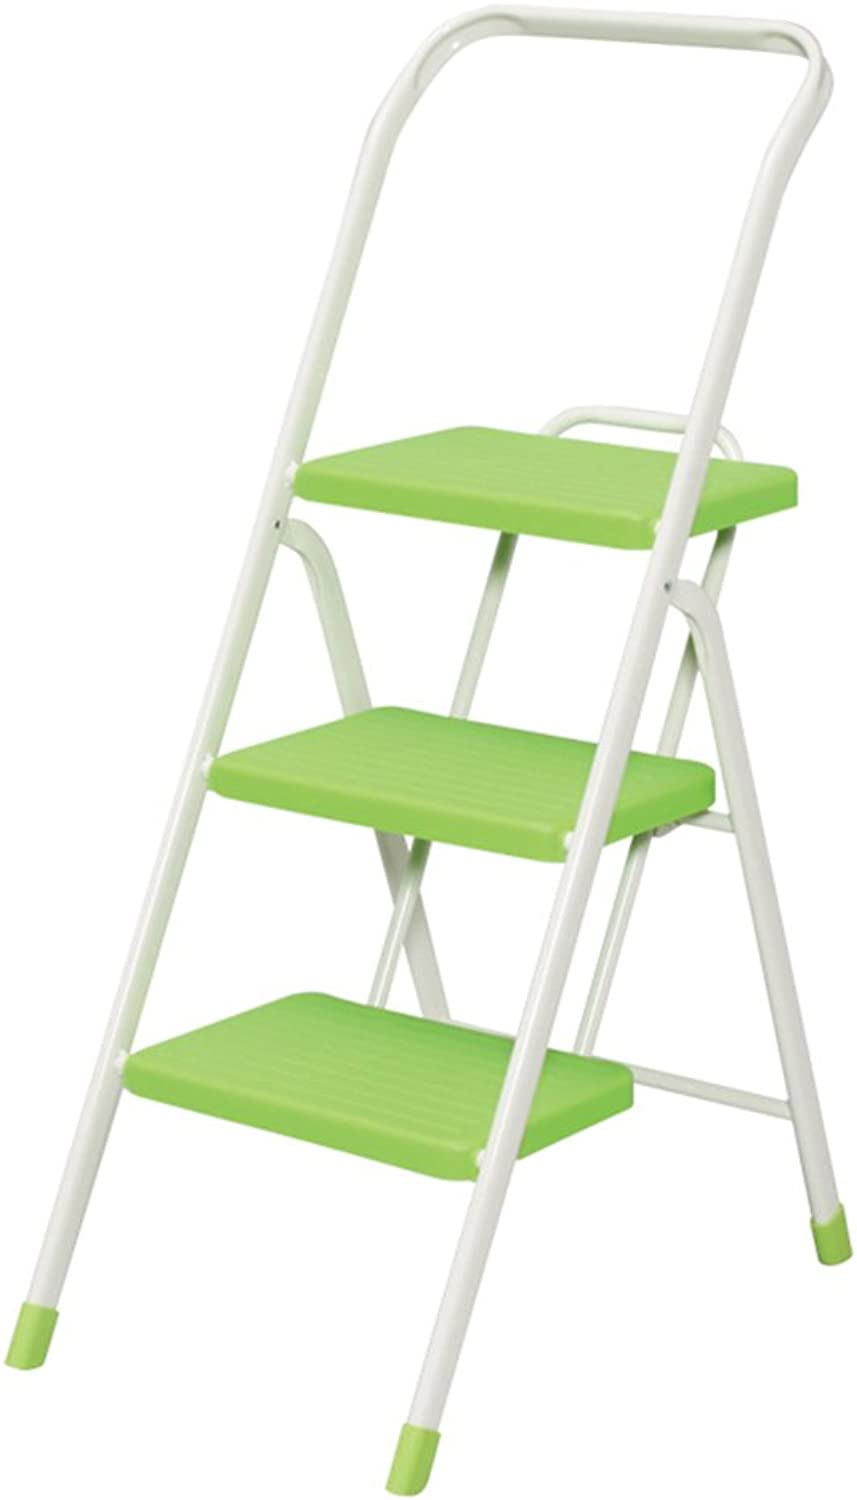 PEILIAN Step Stool, Household Folding Ladder, Safe Ascending Ladder, Three-step Metal Ladder, Mobile Anti-skid Ladder (color   Green)